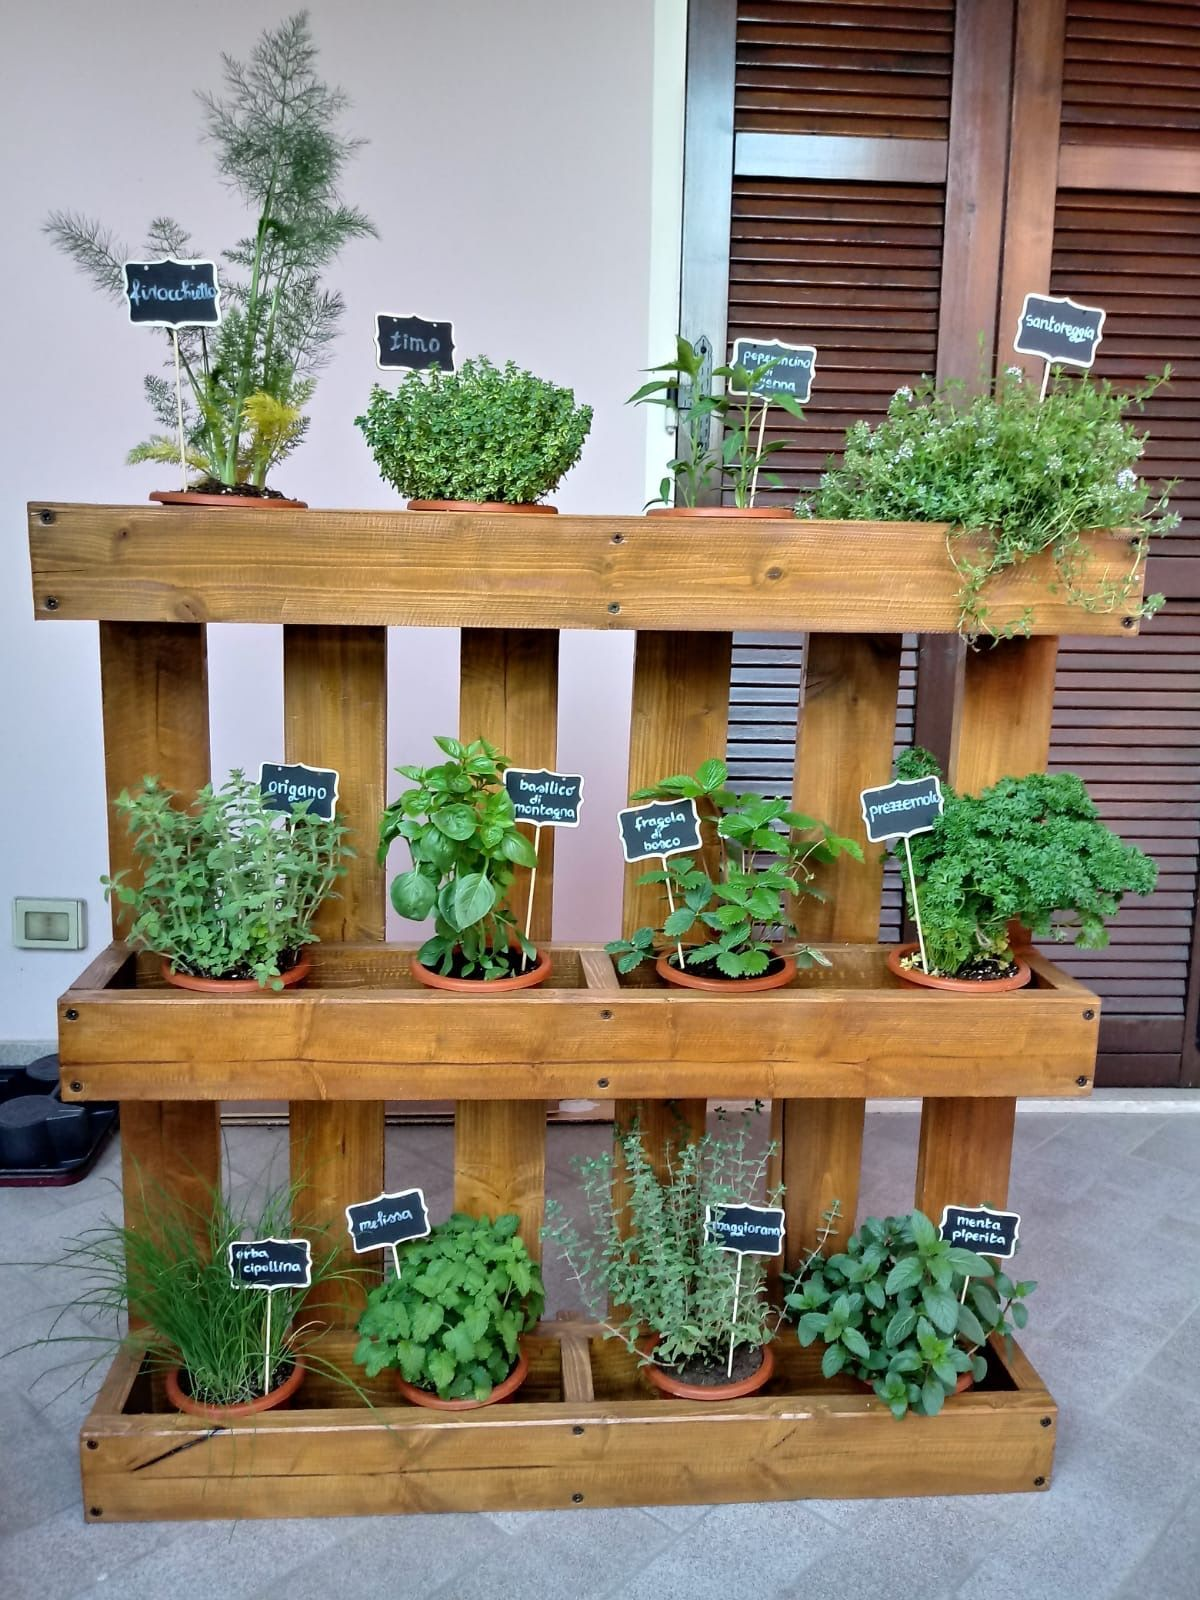 Great Images backyard herb garden Style #outdoorherbgarden